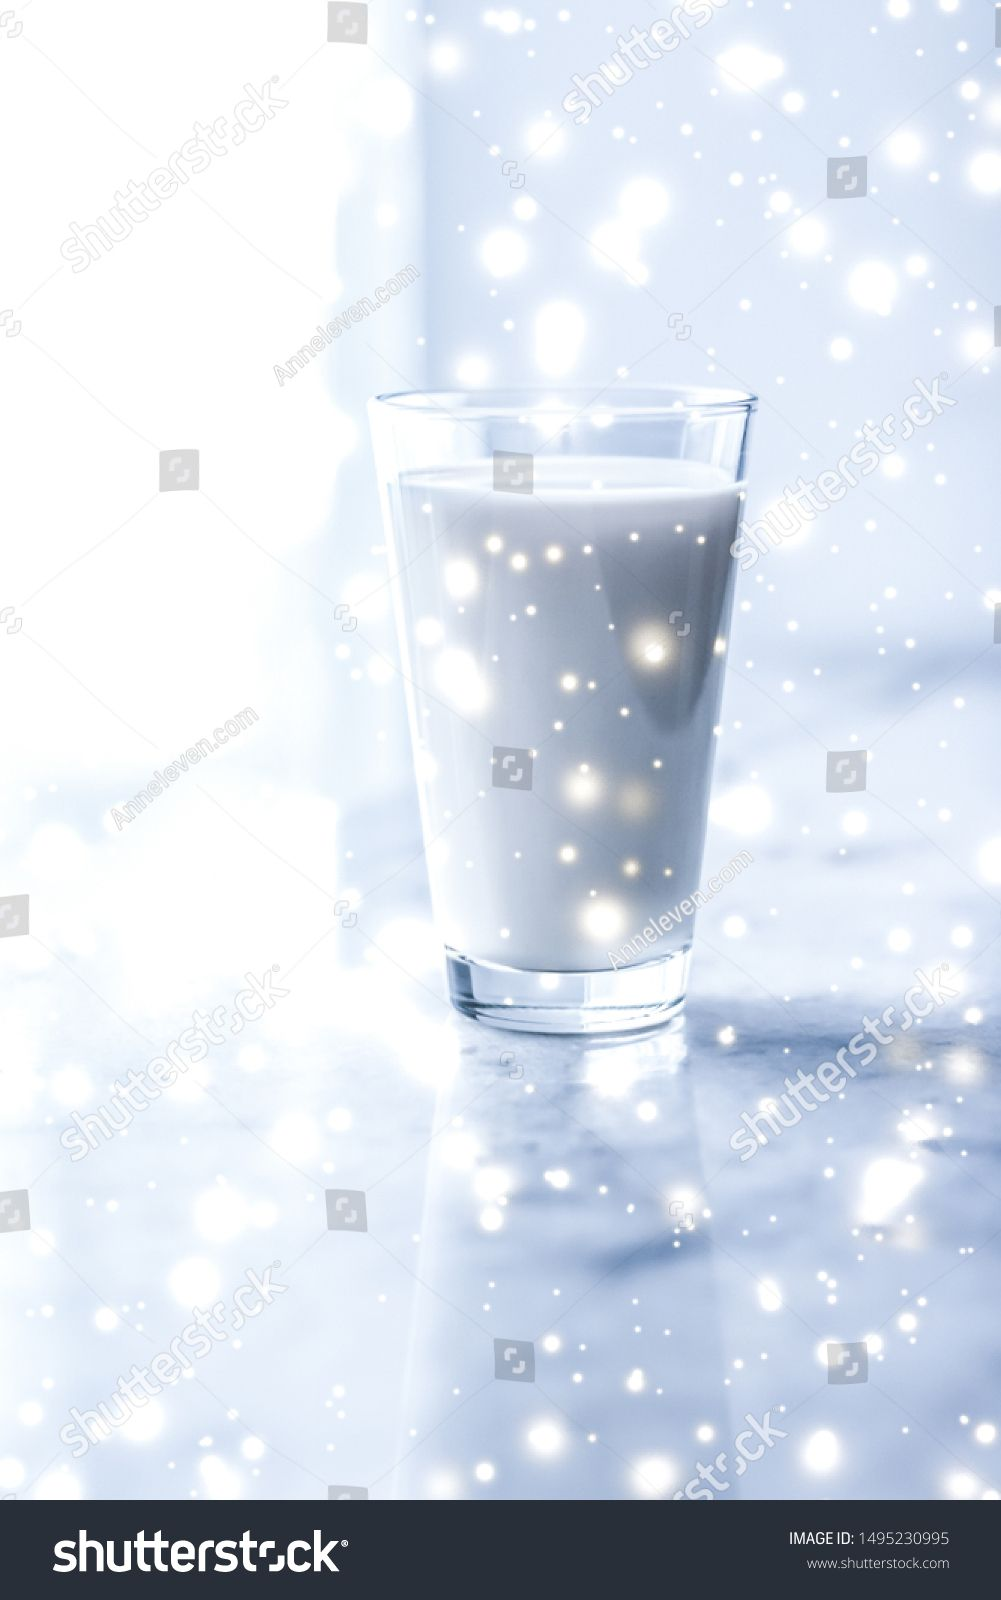 Dairy products, healthy diet and Christmas food concept - Magic holiday drink, pouring organic lactose free milk into glass on marble table #Sponsored , #Affiliate, #concept#food#holiday#Magic